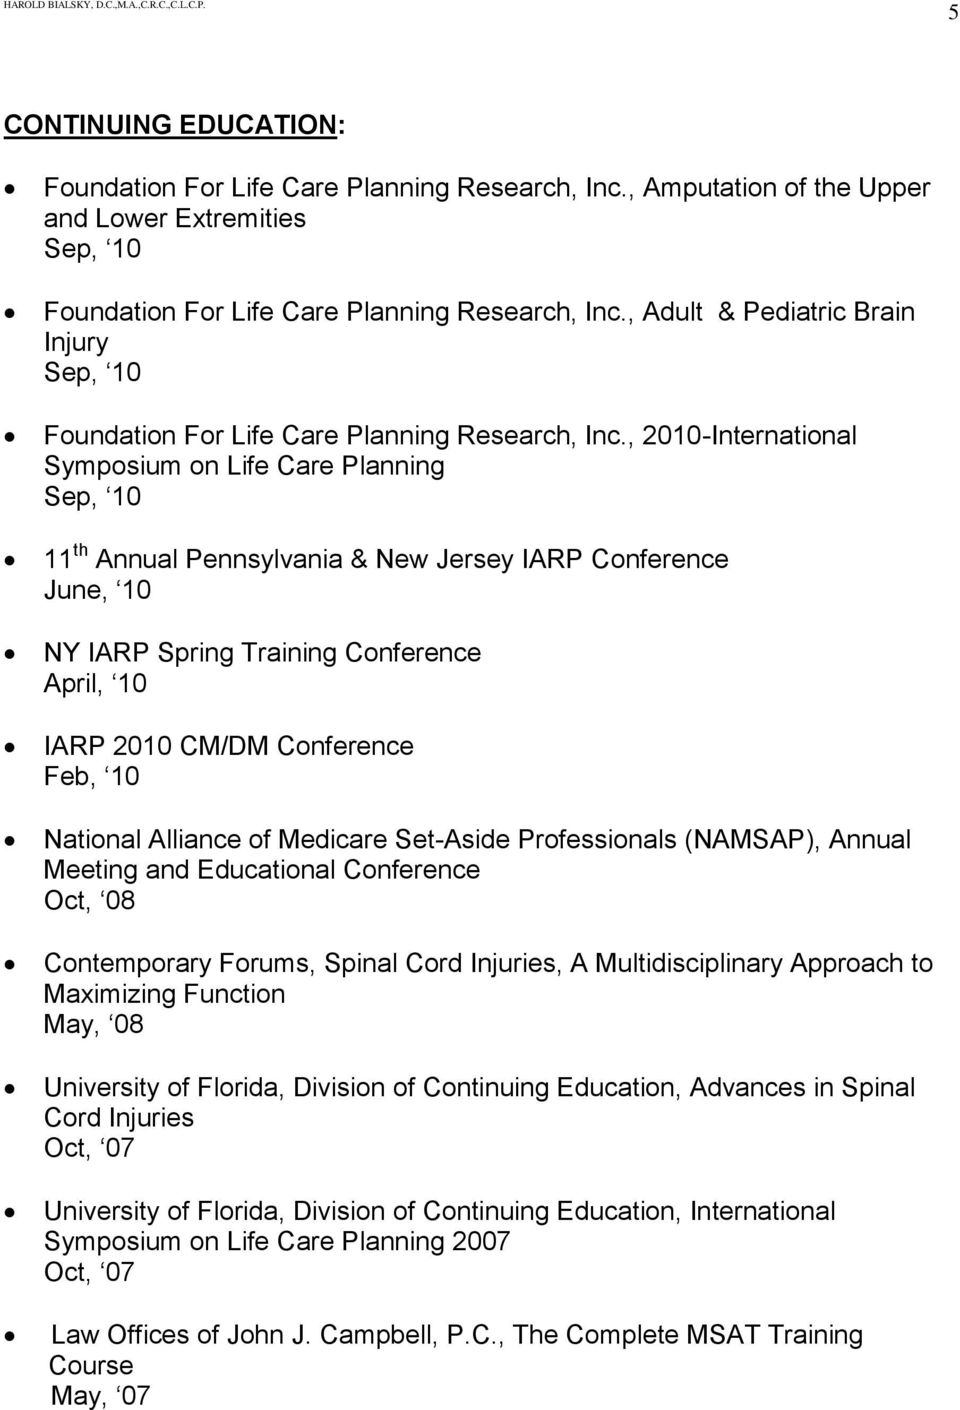 , 2010-International Symposium on Life Care Planning Sep, 10 11 th Annual Pennsylvania & New Jersey IARP Conference June, 10 NY IARP Spring Training Conference April, 10 IARP 2010 CM/DM Conference